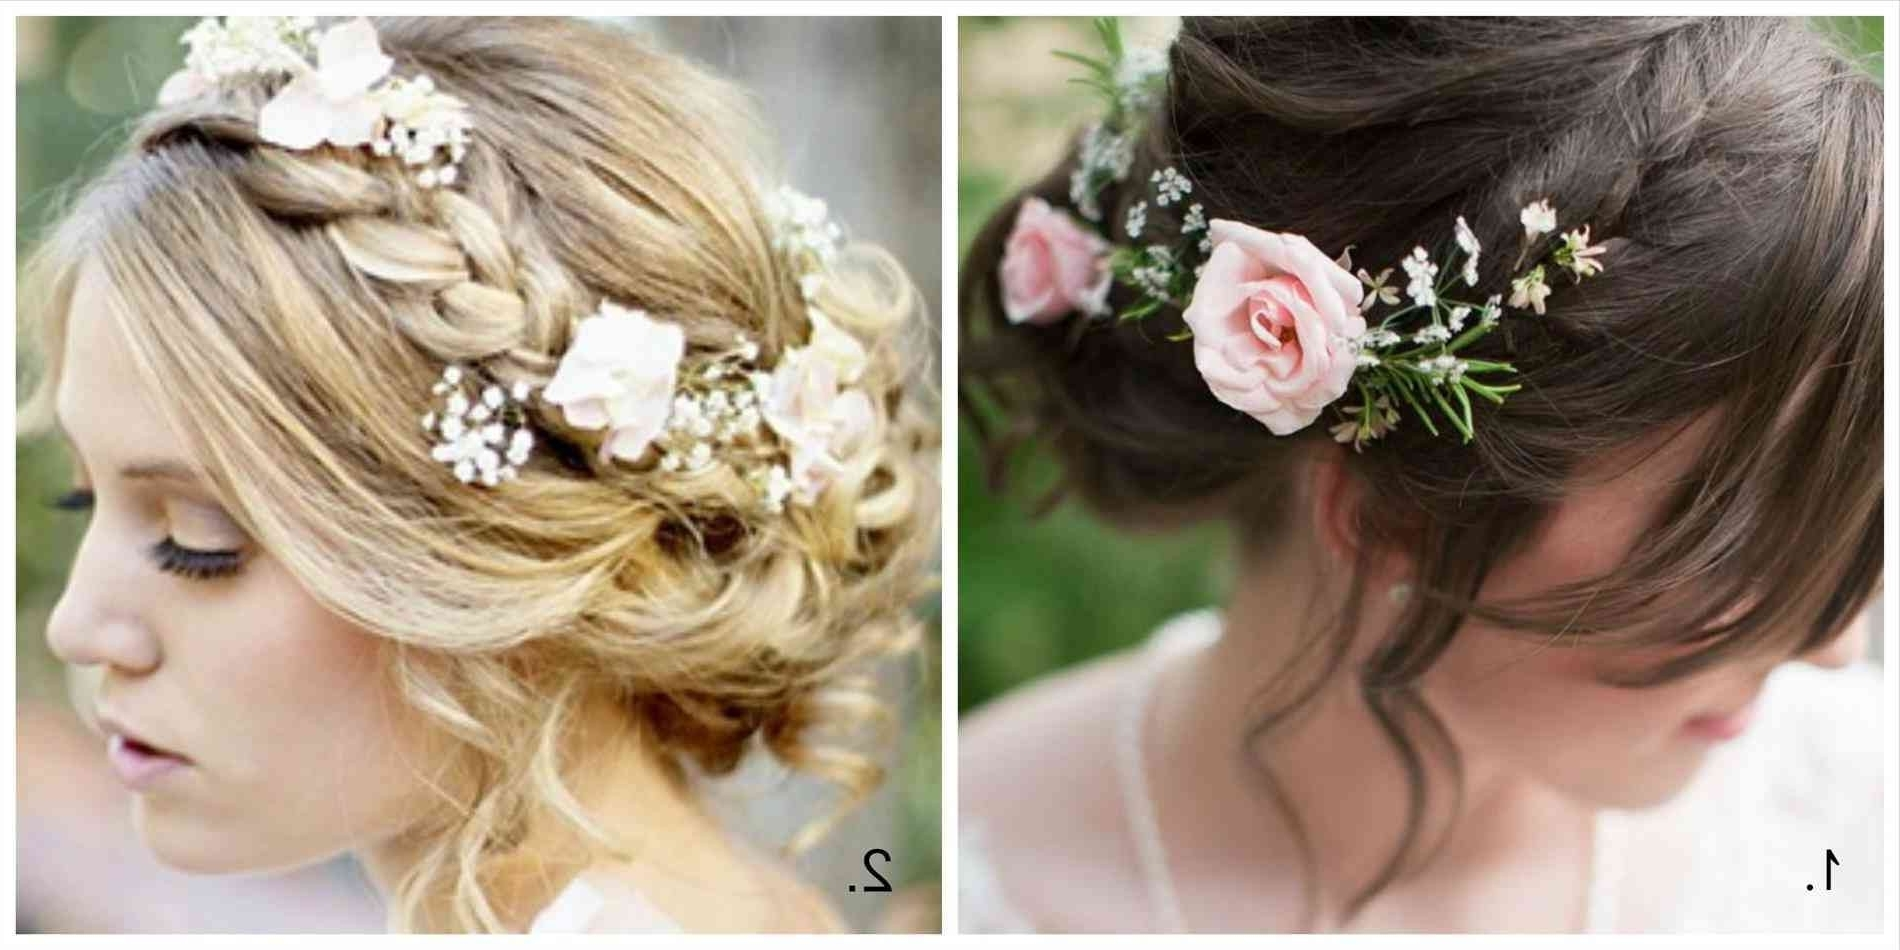 2017 Braids And Flowers Hairstyles Inside Wedding Hair Braided Flowers Nice Wedding Hairstyles Braids Flowers (View 7 of 15)